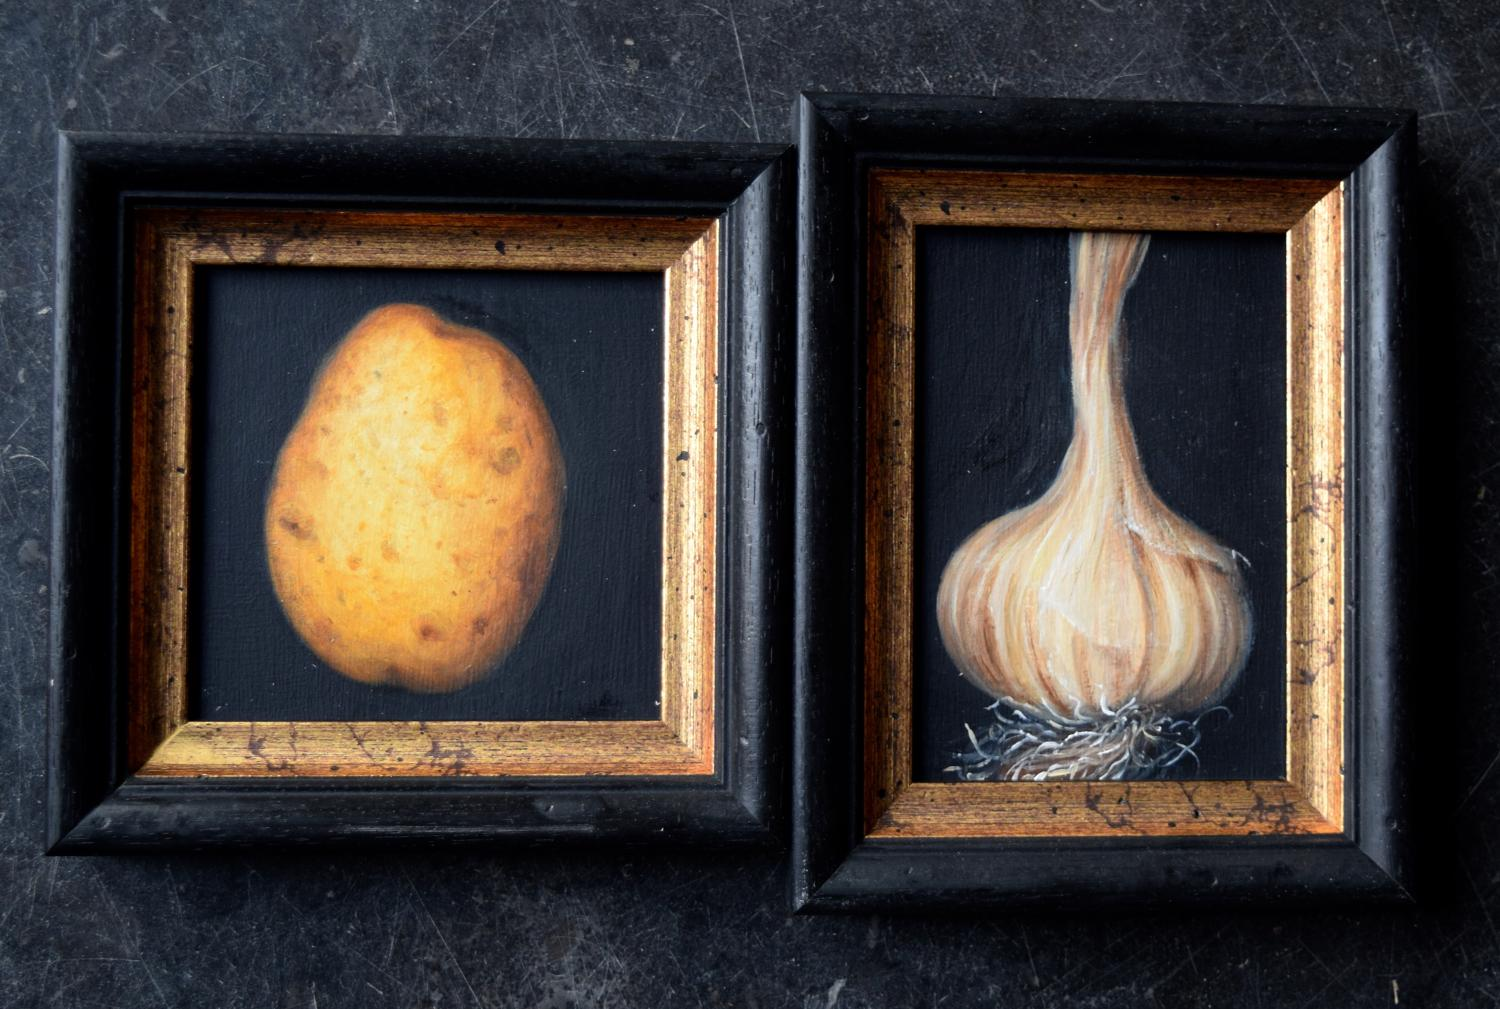 Paintings of a new potato and garlic